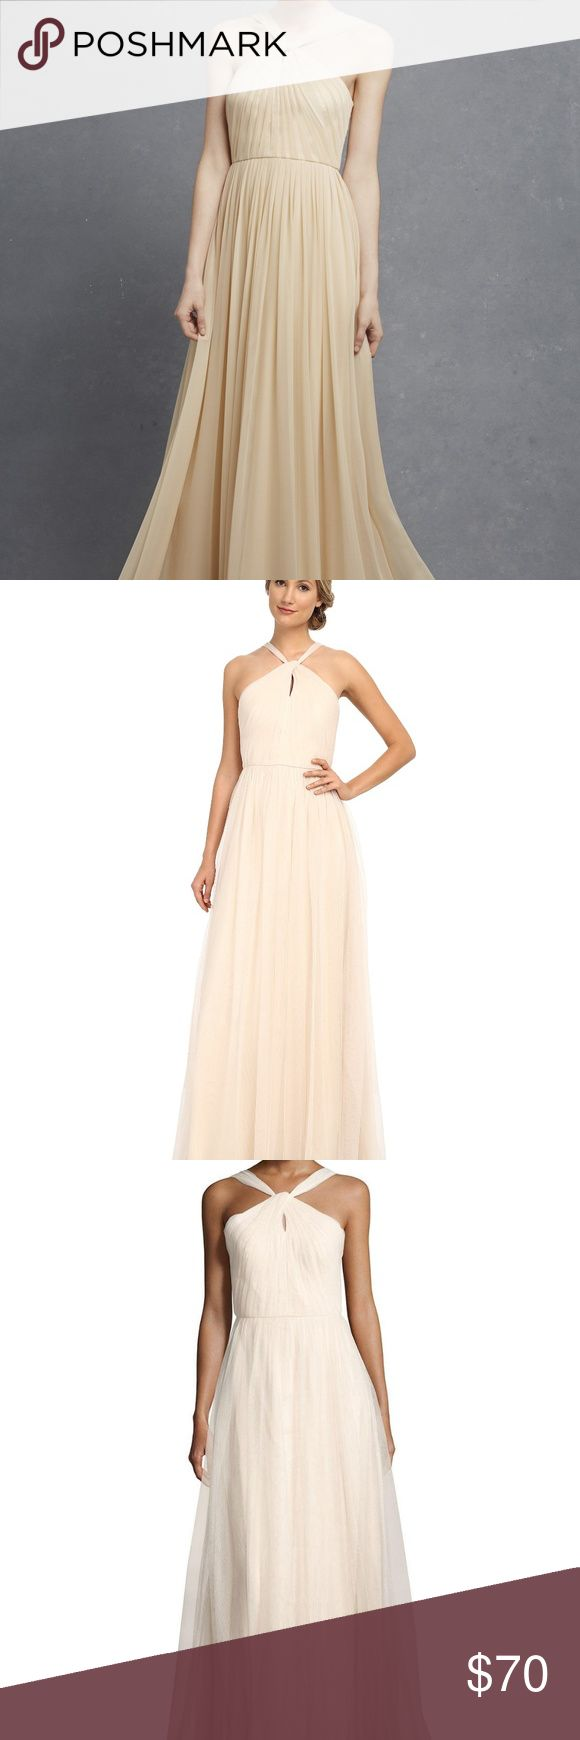 Donna Morgan Ava Mesh Almond Halter Gown 4 NWT Donna Morgan gown with pleated mesh overlay. Color is almond, can be described as a light beige/champagne. Halter neckline; front keyhole. Sleeveless; cut-in shoulders. Seam at natural waist. A-line silhouette.Straight hem. Polyester; acetate lining. Gorgeous for a bridesmaid or formal event! New with tags. Donna Morgan Dresses Maxi